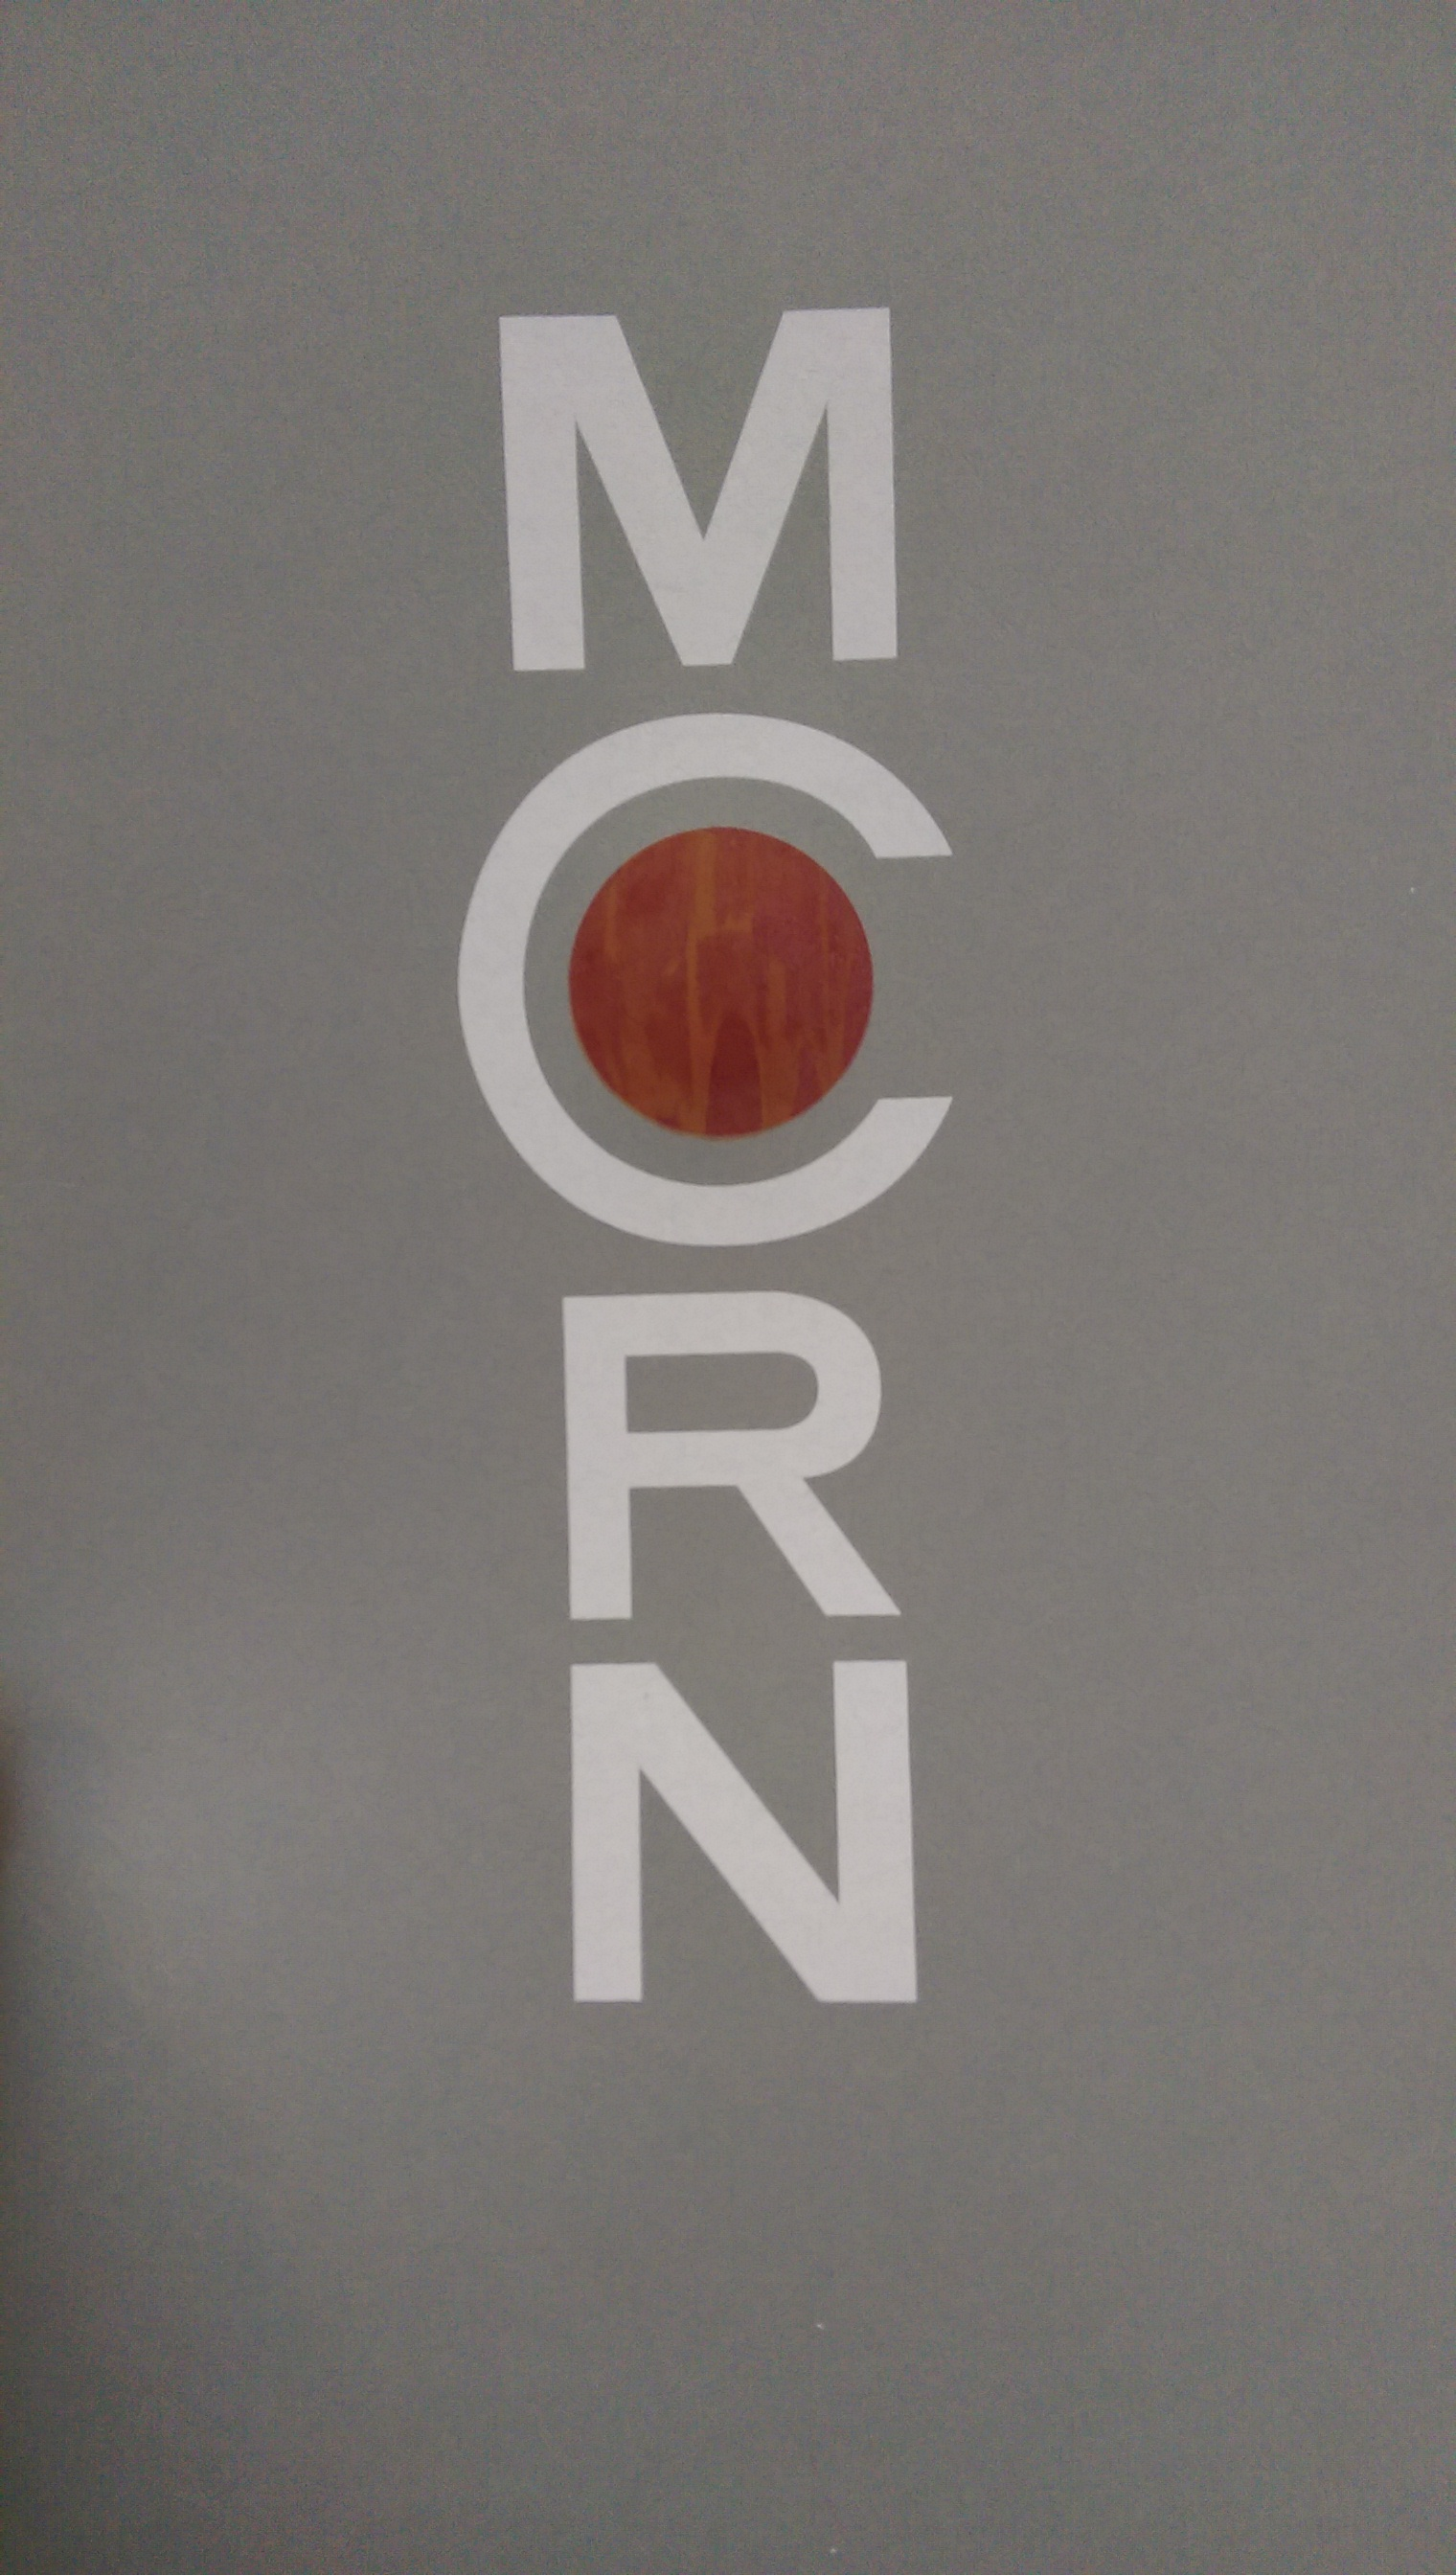 Made a screen printed poster of the MCRN logo.